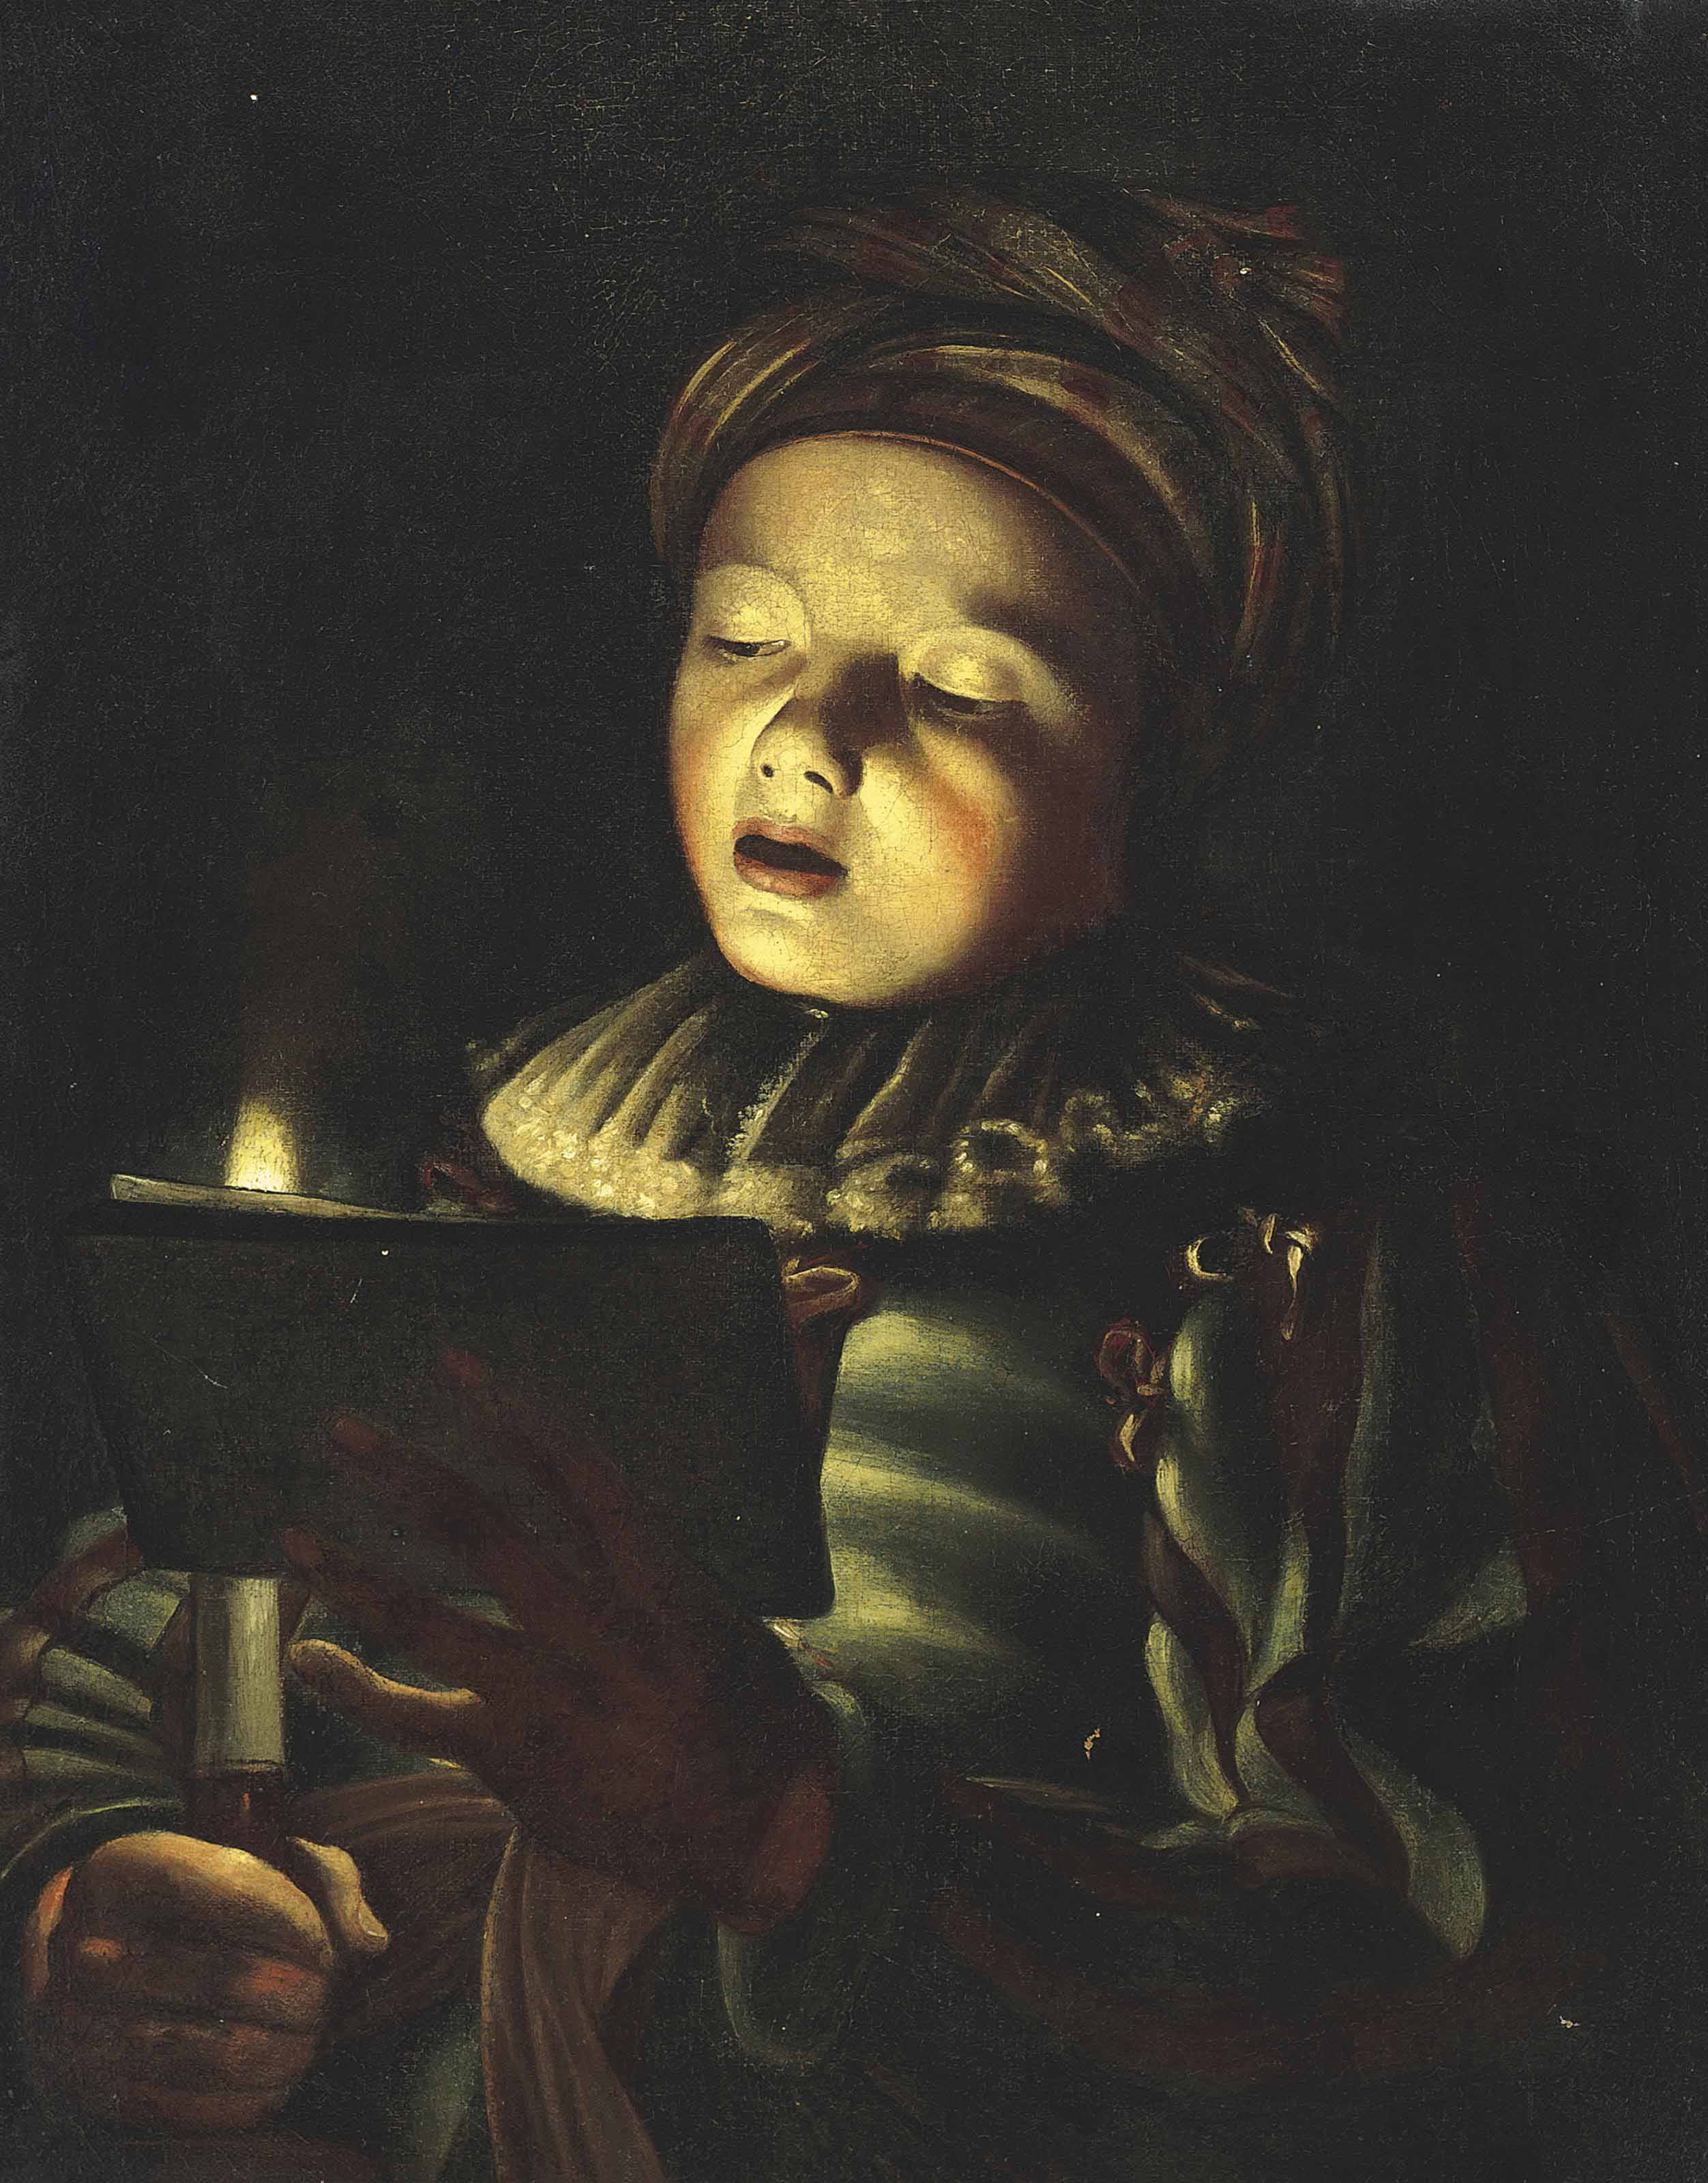 A boy singing by candlelight